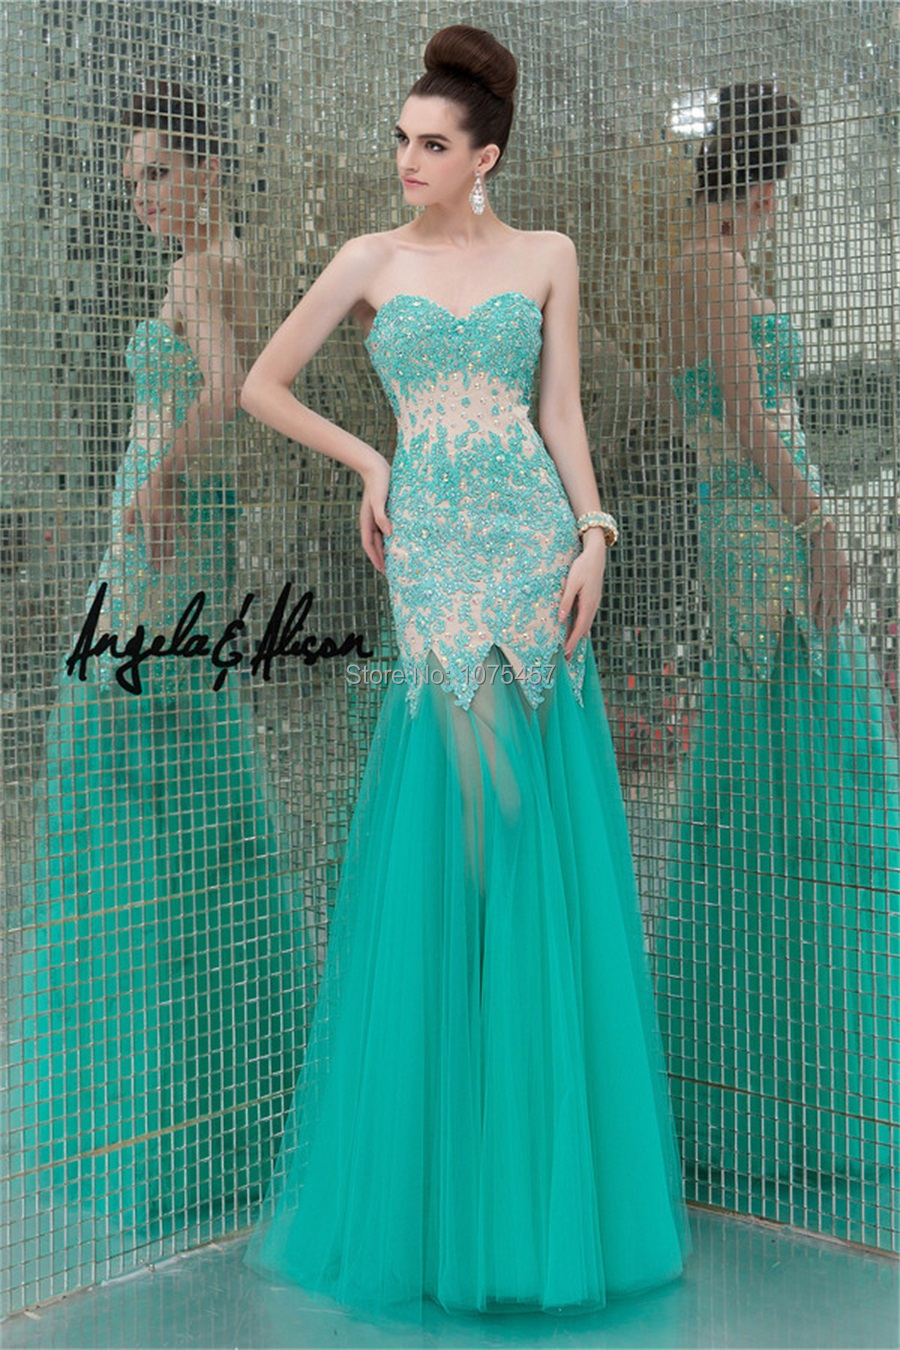 Popular Long Turquoise Prom Dresses-Buy Cheap Long Turquoise Prom ...